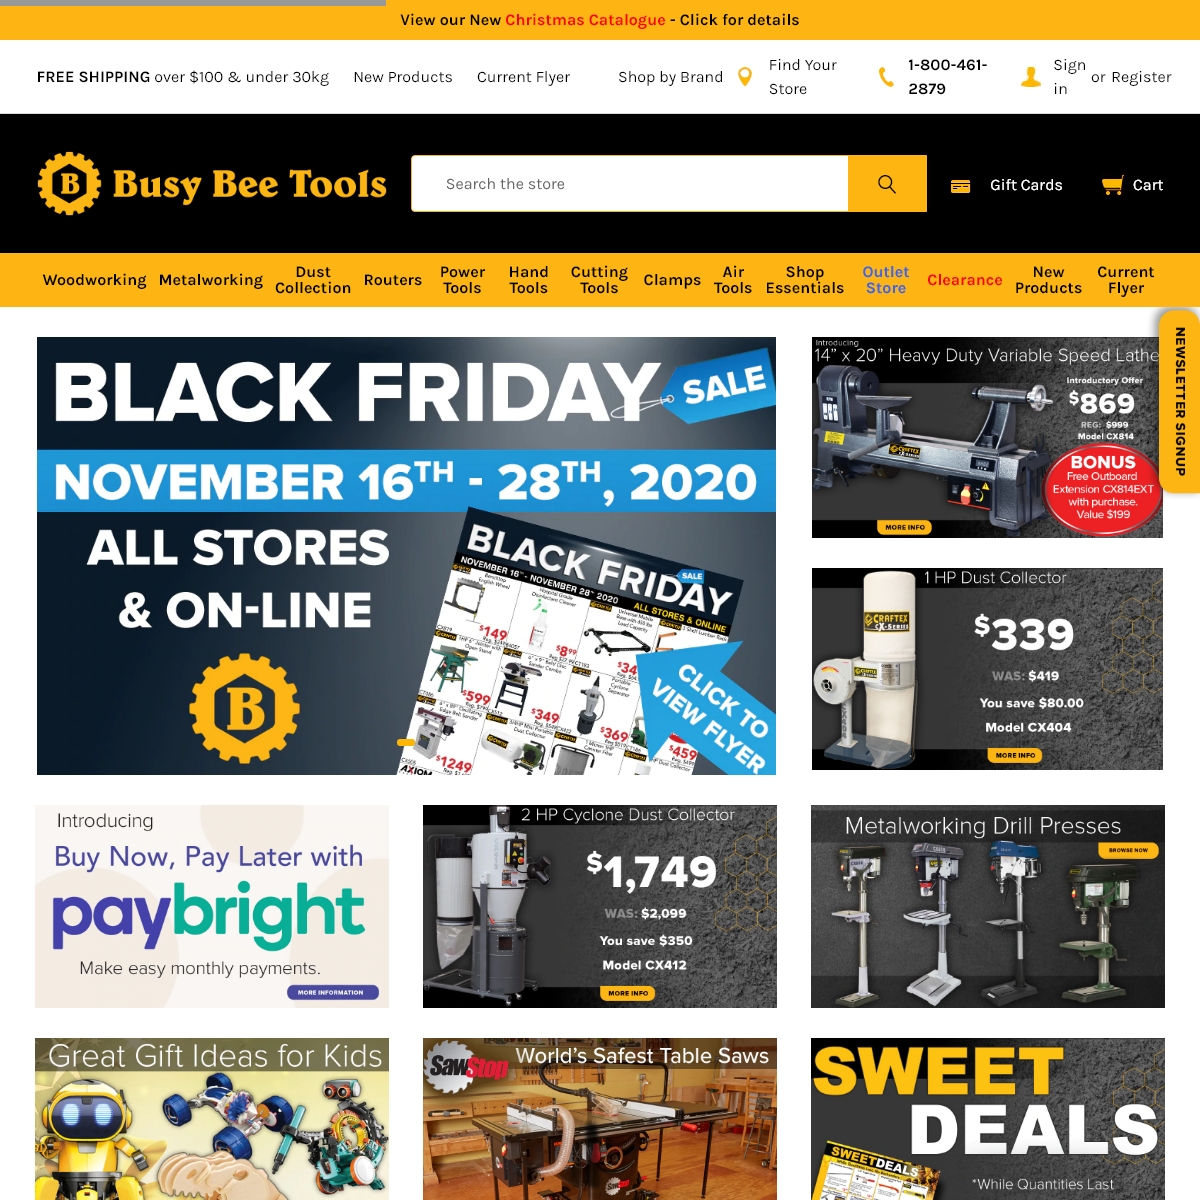 Busy Bee Tools - Woodworking Tools, Metalworking Tools, Power Tools at factory direct prices.